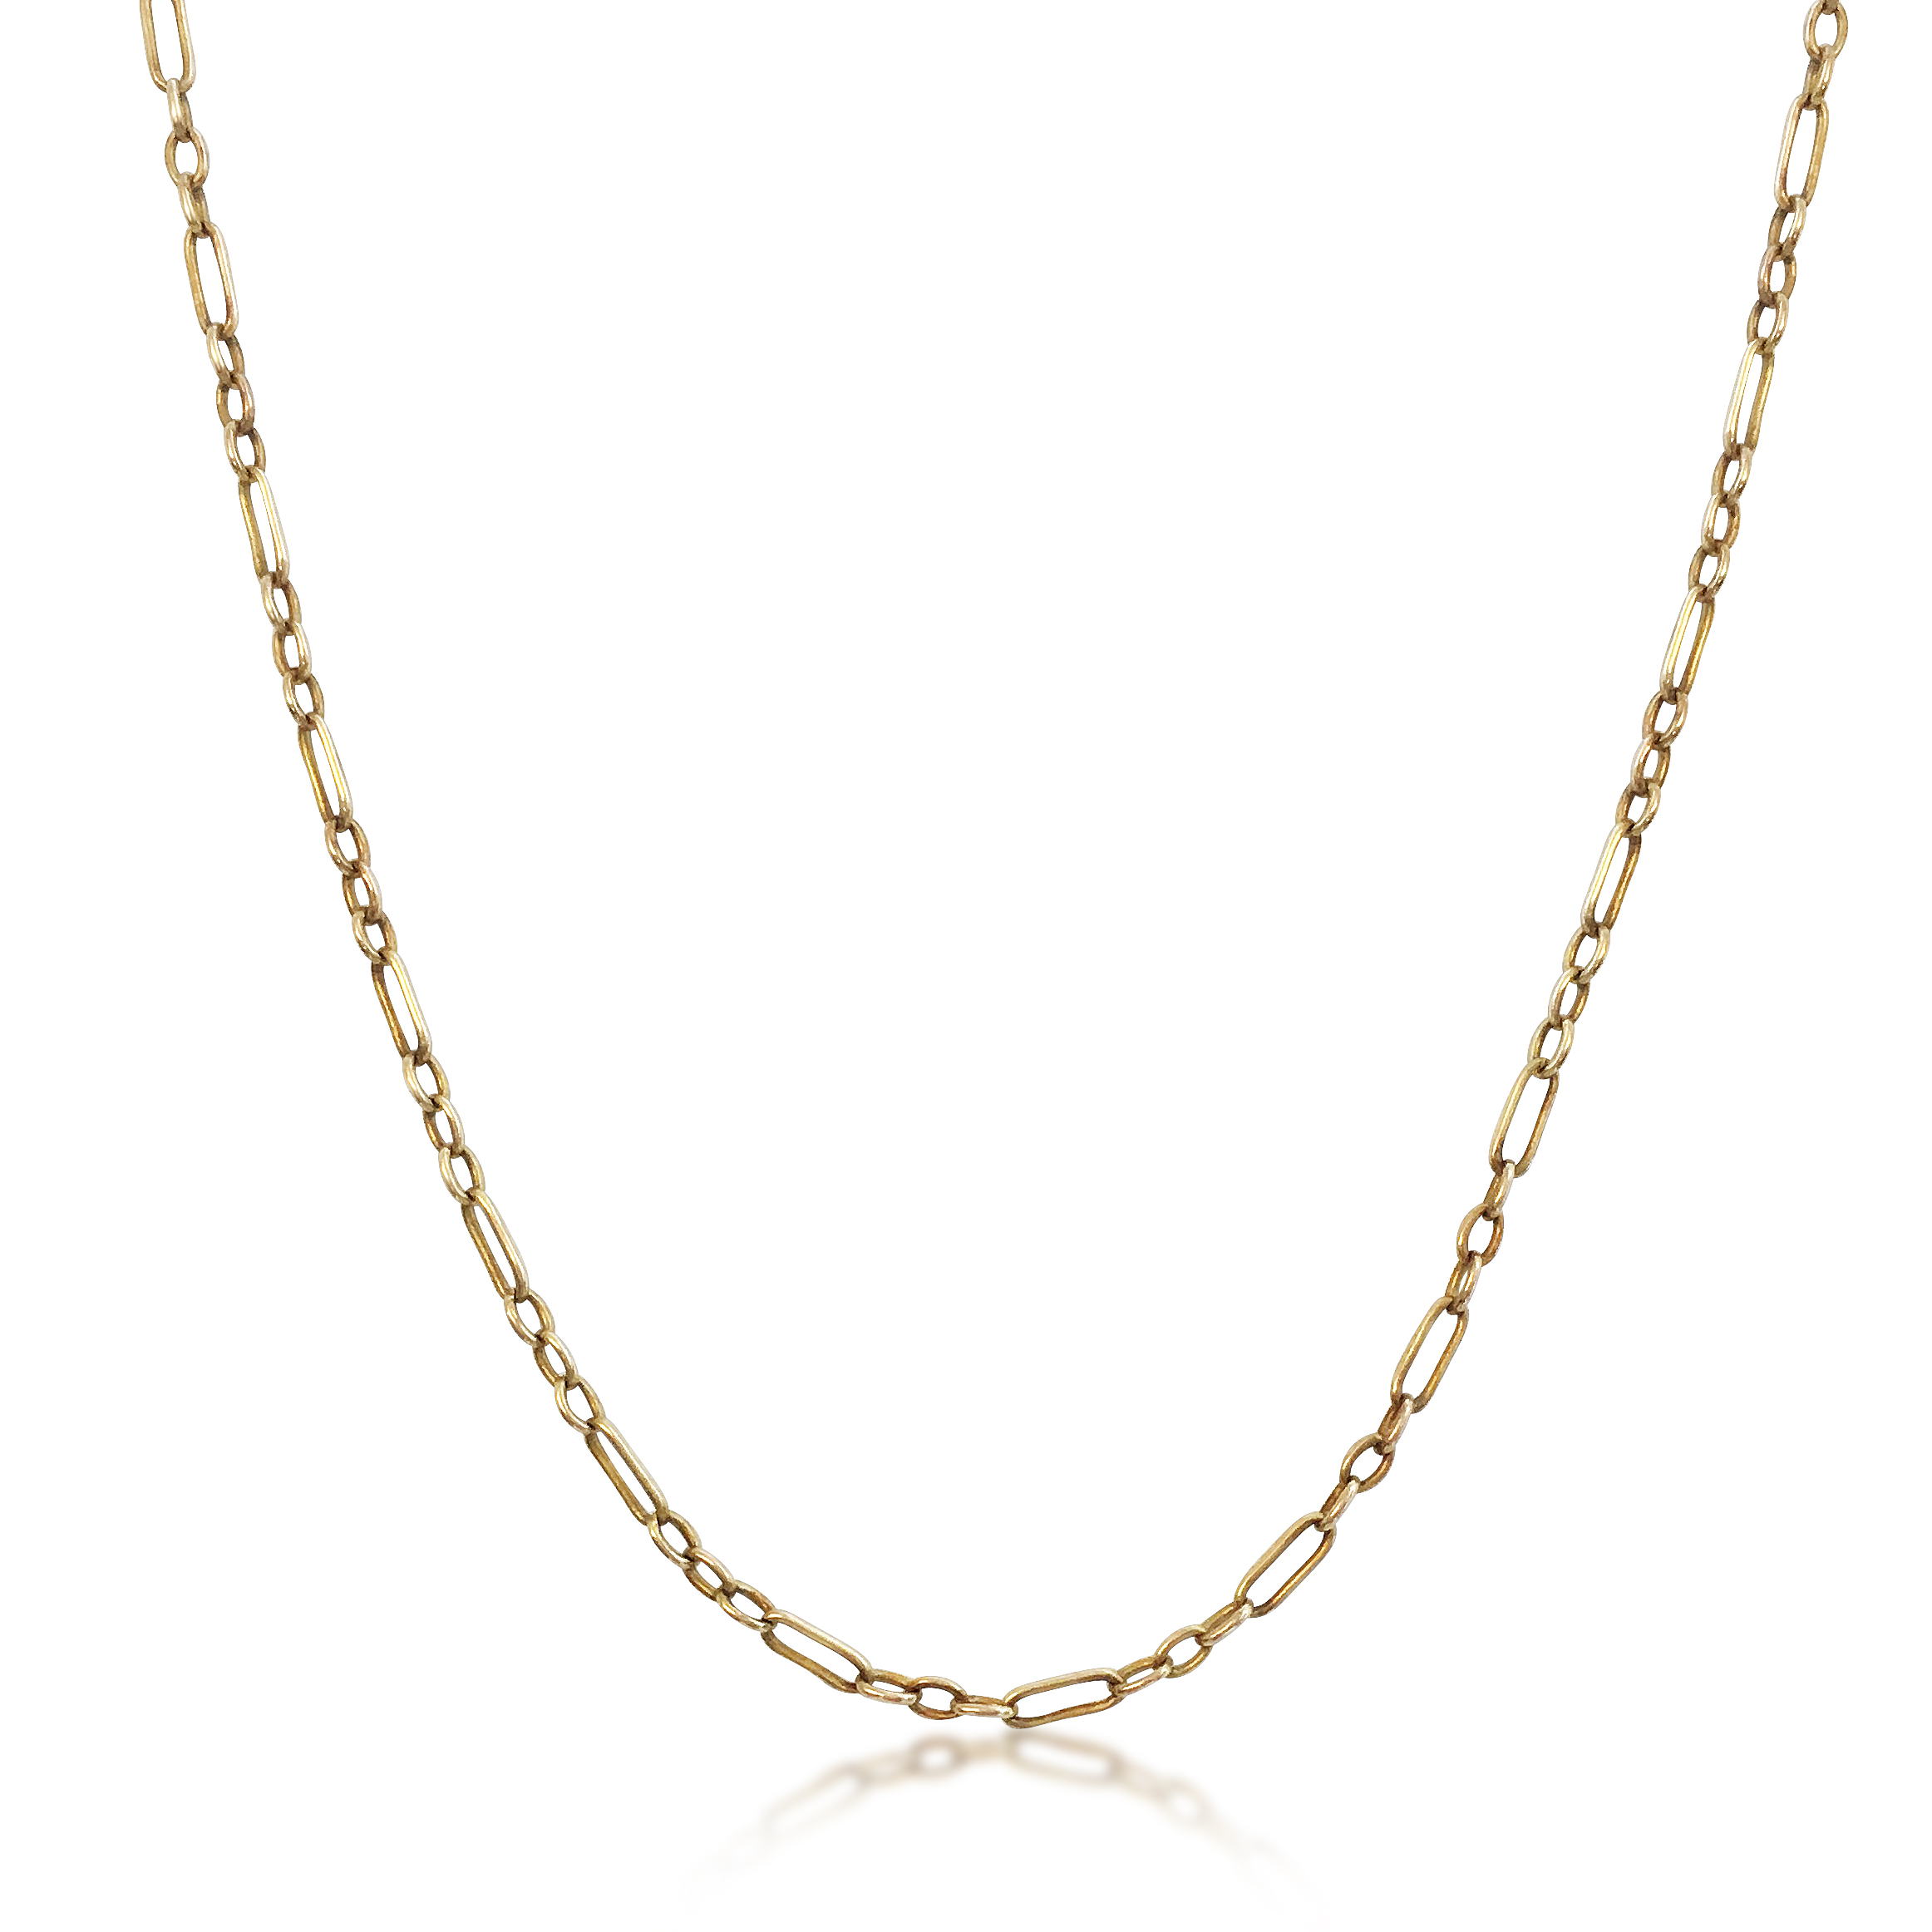 21-inch-9ct-yellow-gold-figaro-chain-1-2.jpg